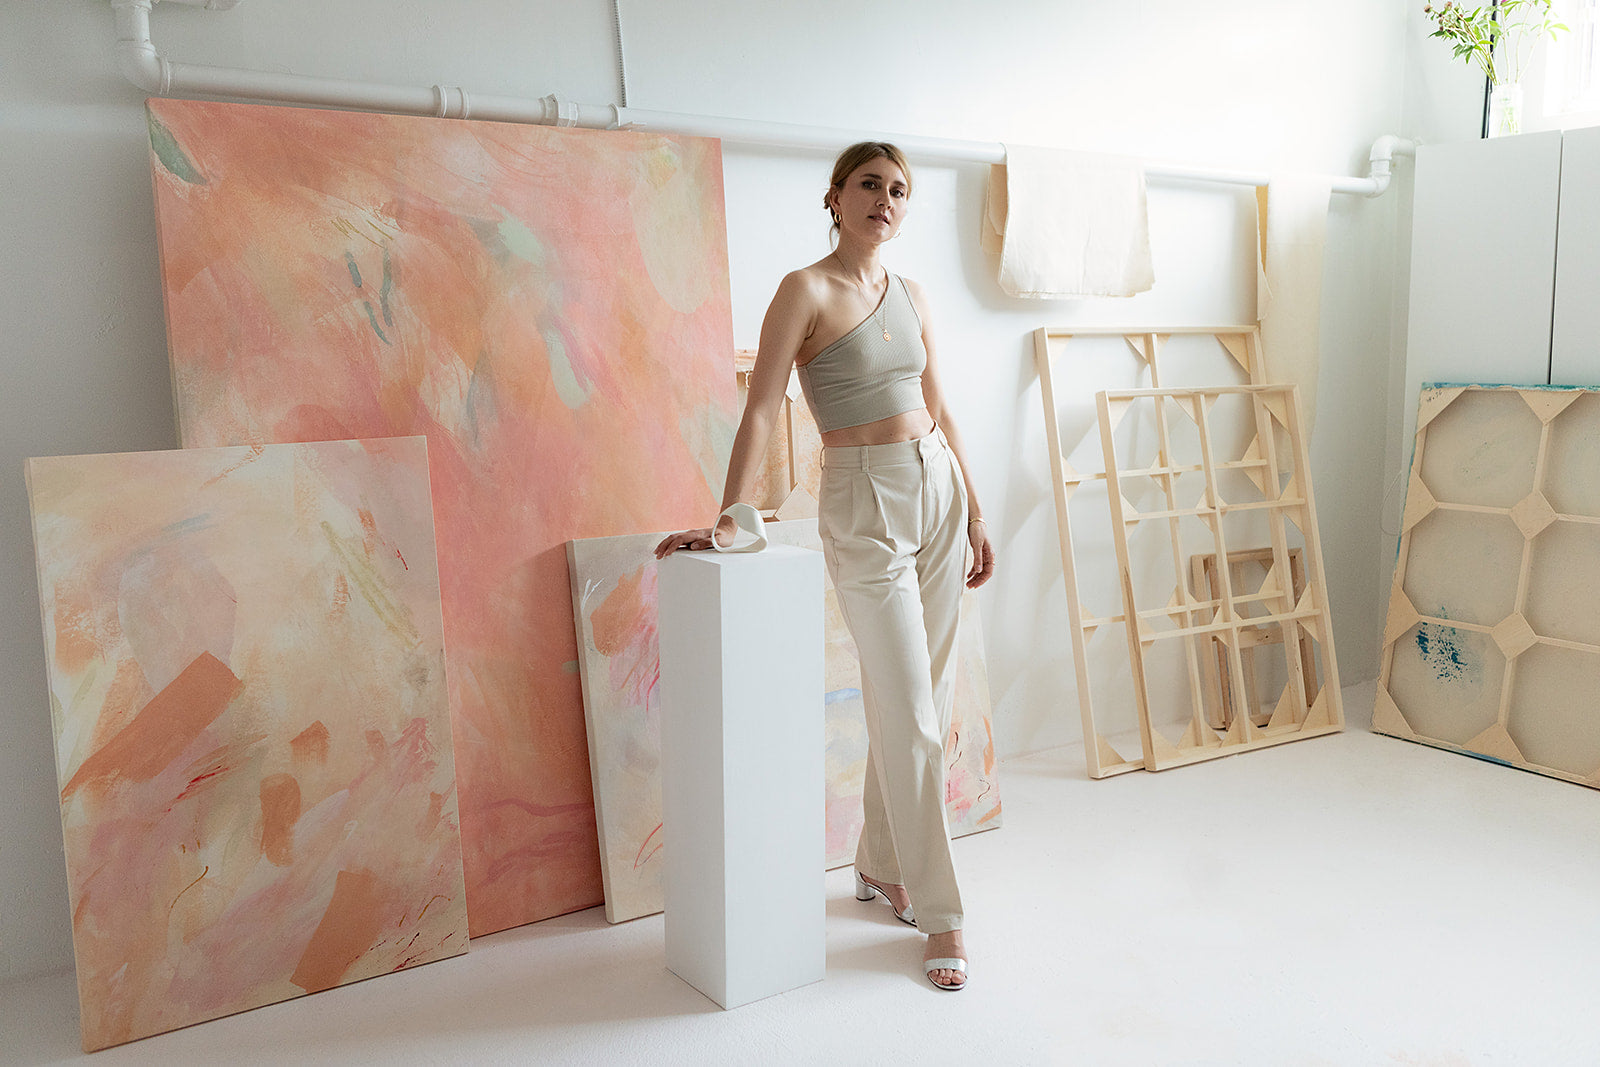 Oksana Berda the artist stands in her light filled studio surrounded by paintings